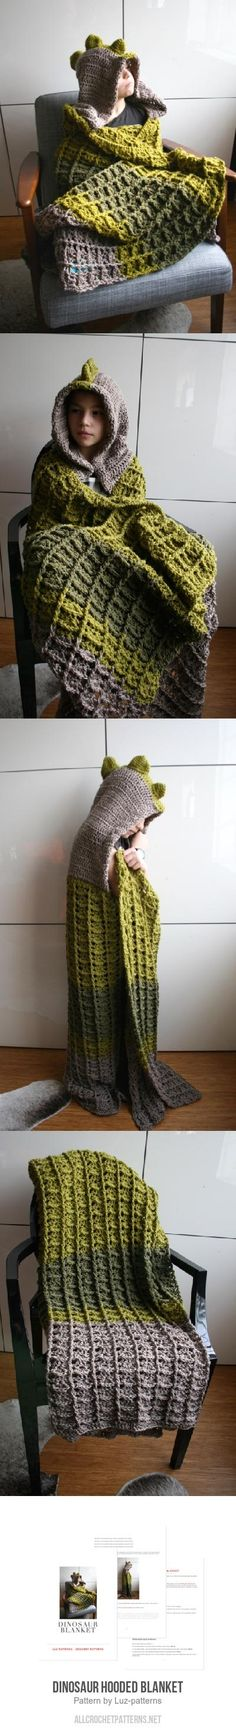 Dinosaur hooded blanket crochet pattern